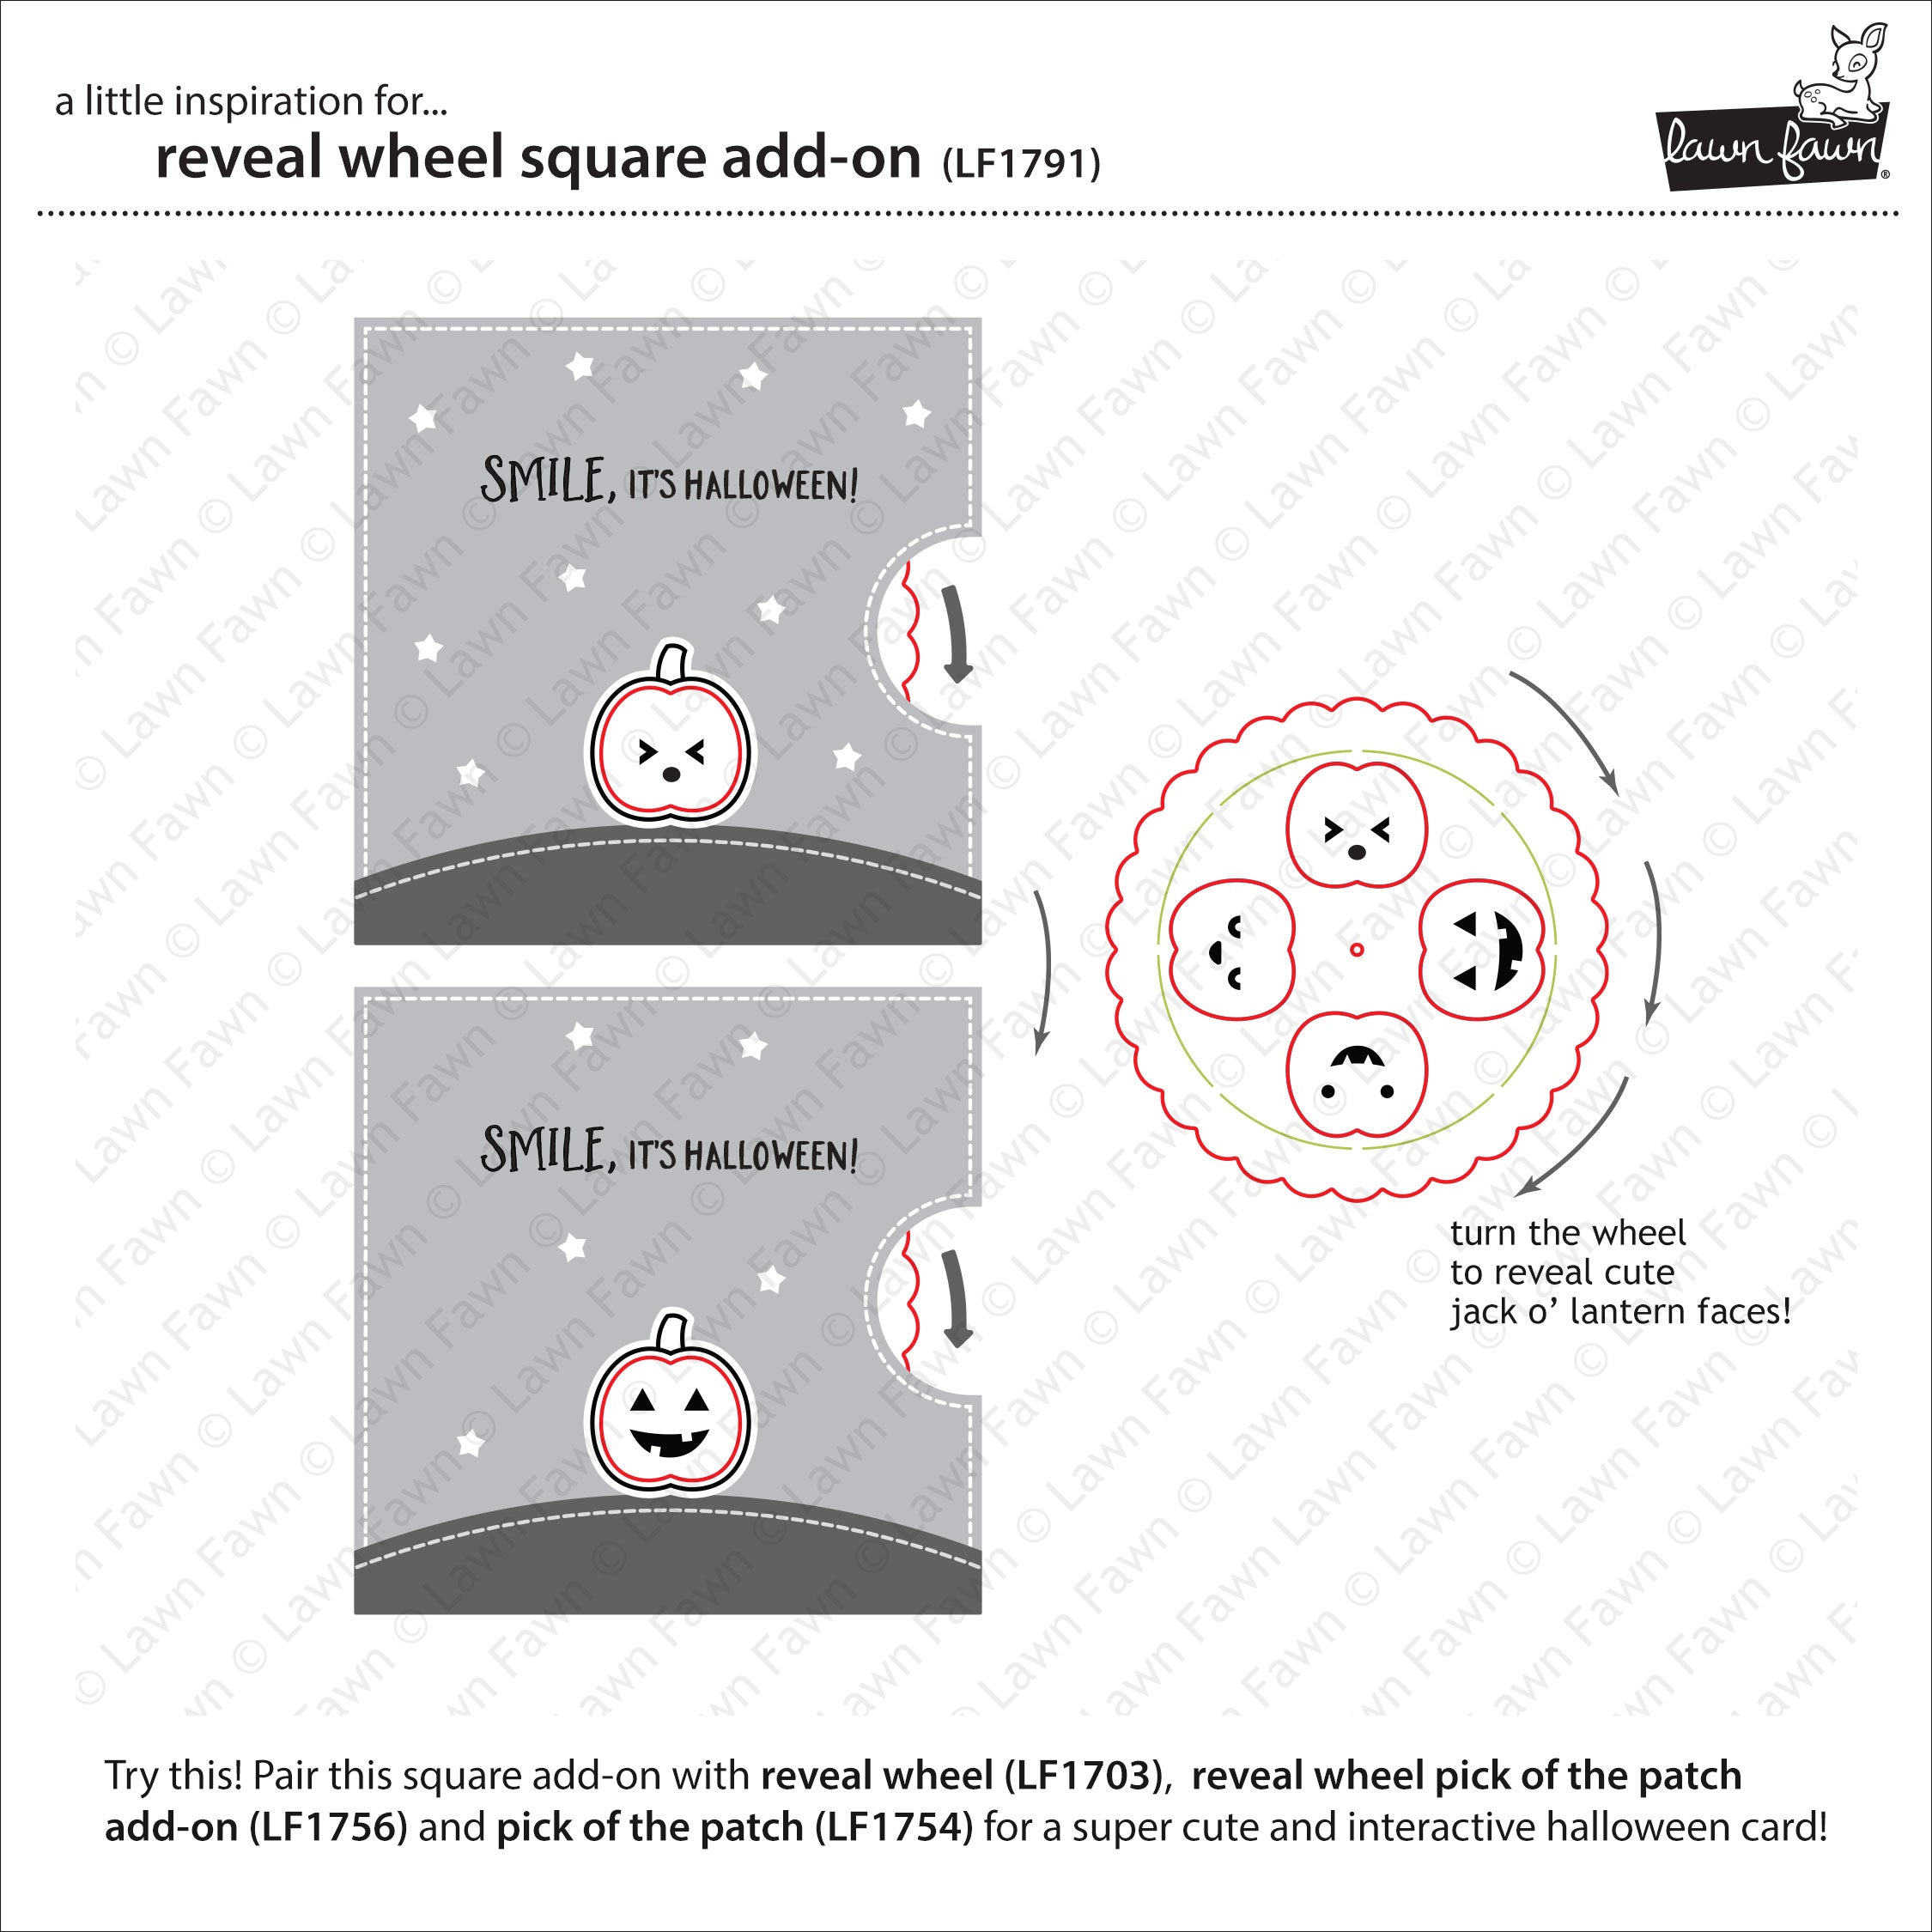 reveal wheel square add-on